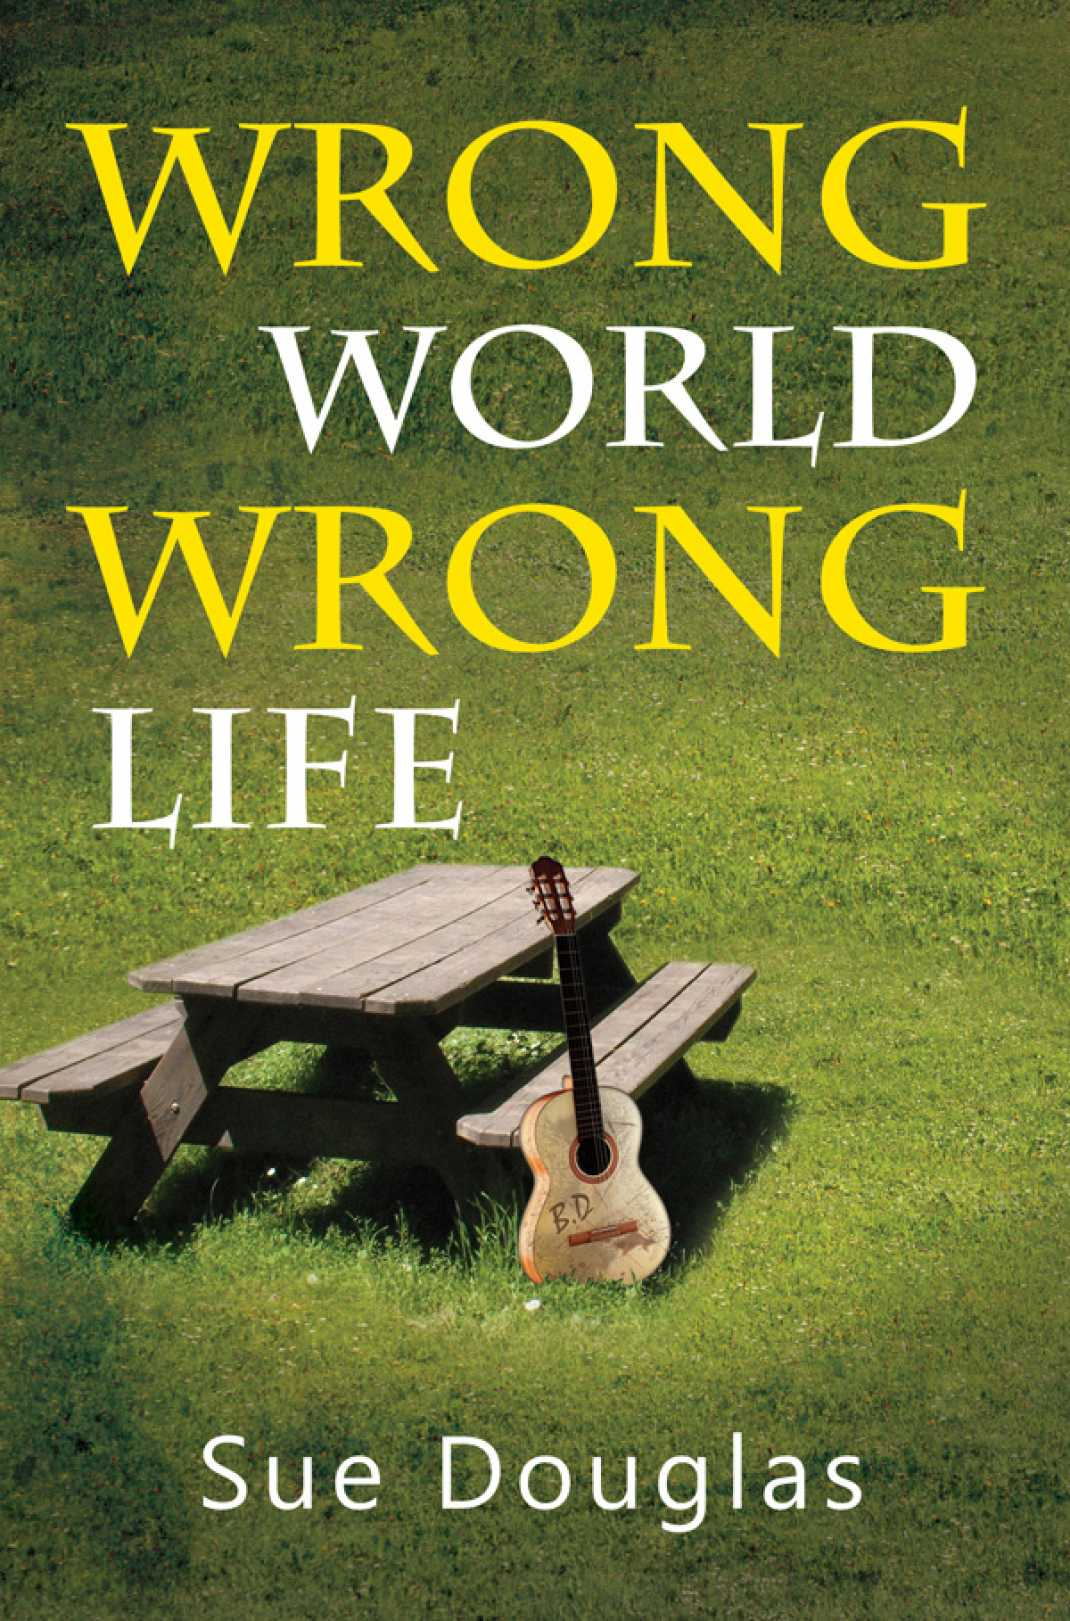 Wrong World, Wrong Life